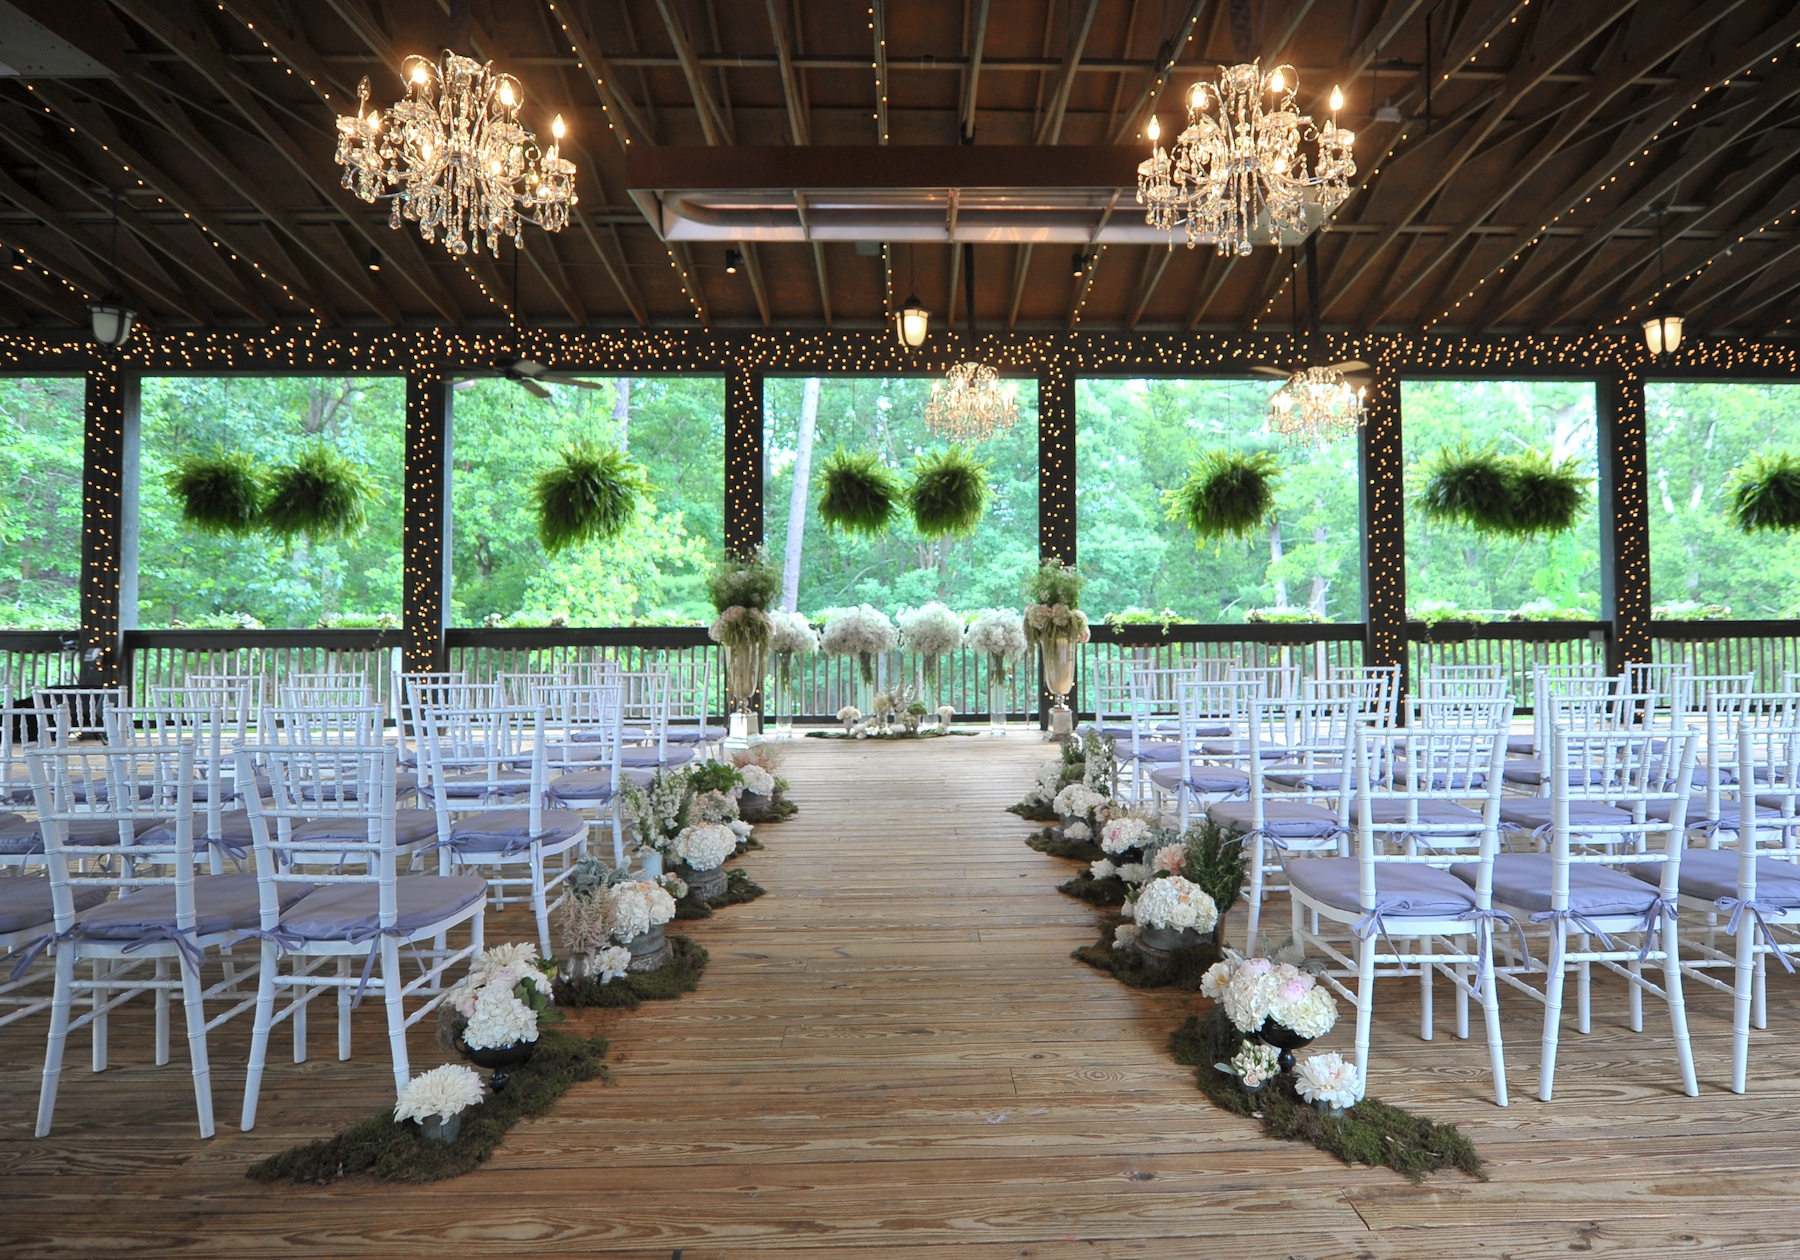 Indoor wedding ceremony venues wedding ceremony location for Wedding venues in asheville nc